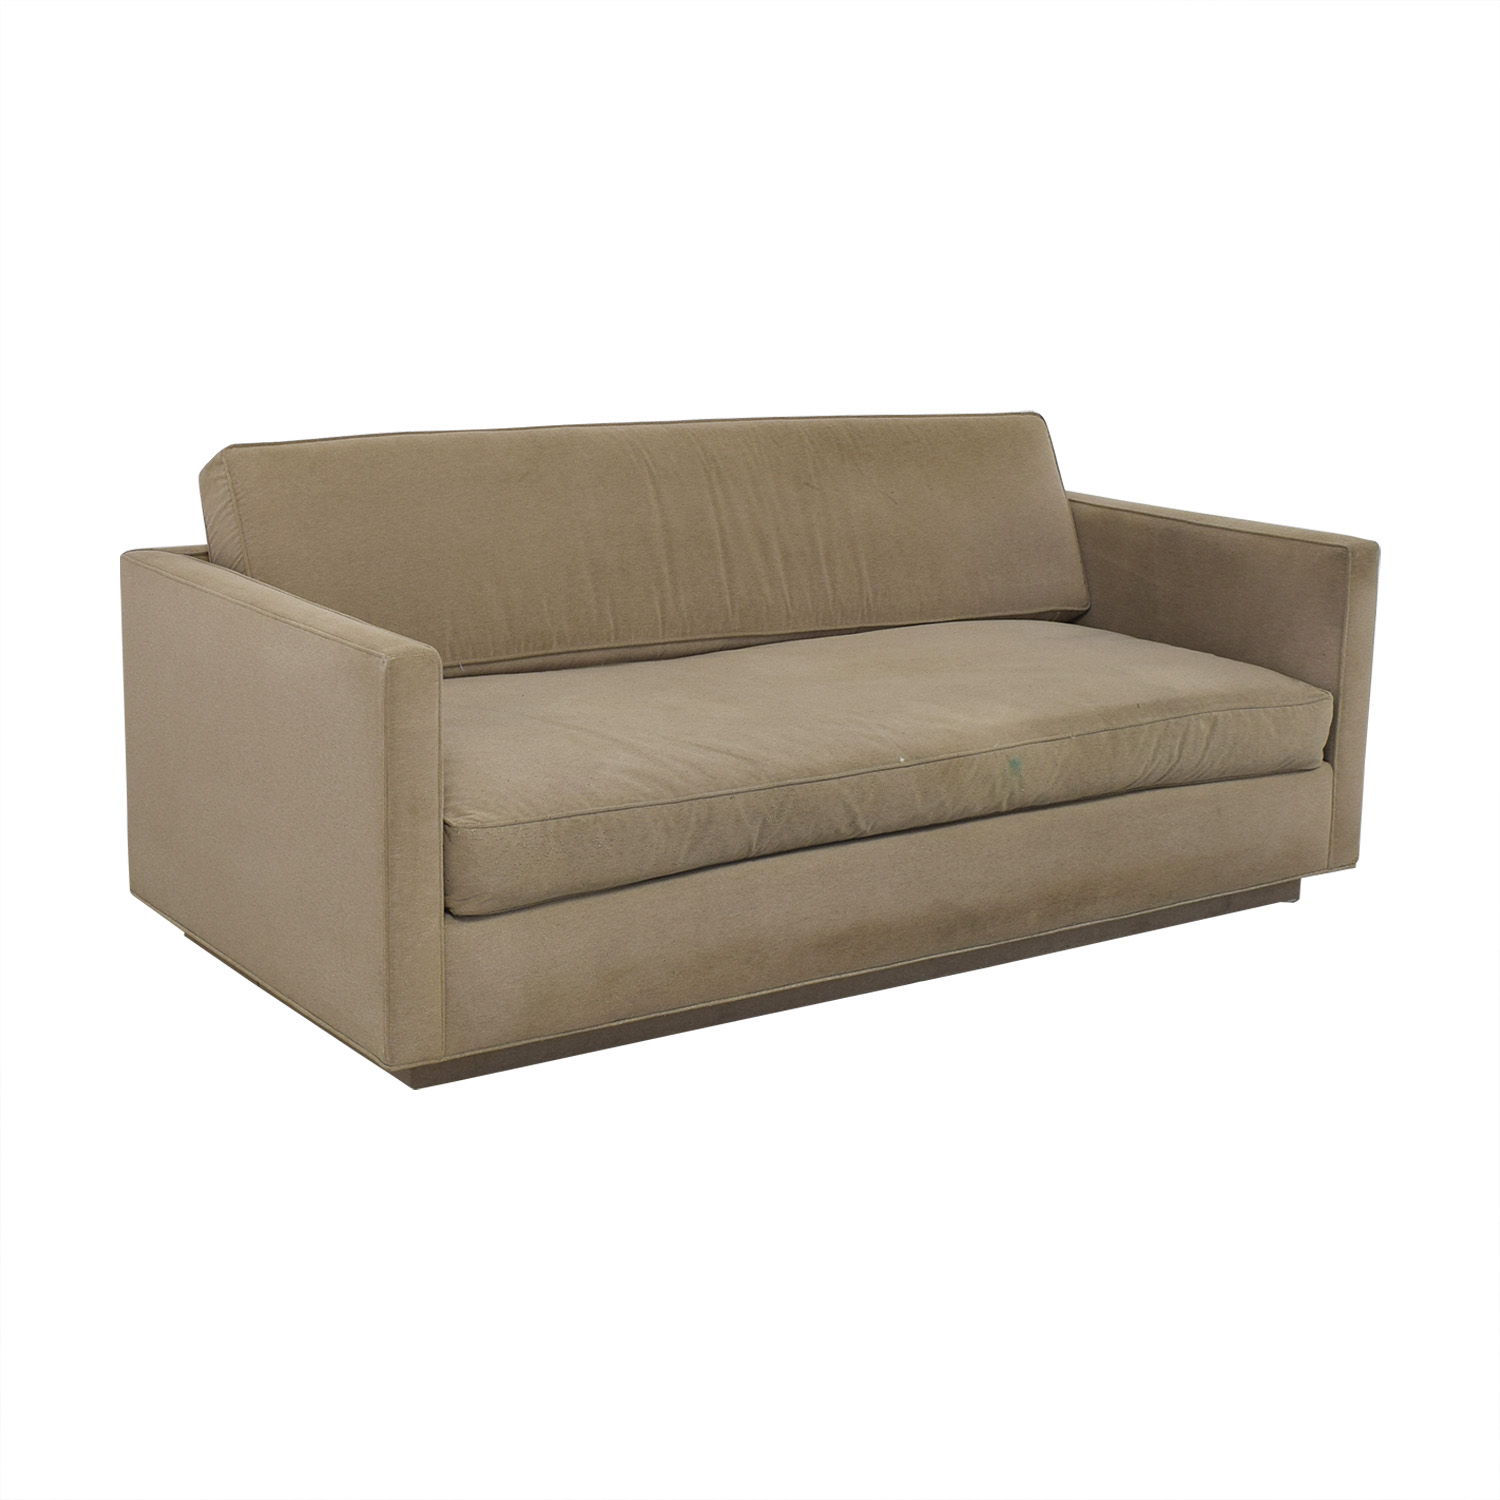 Todd Hase Todd Hase One Cushion Sofa discount